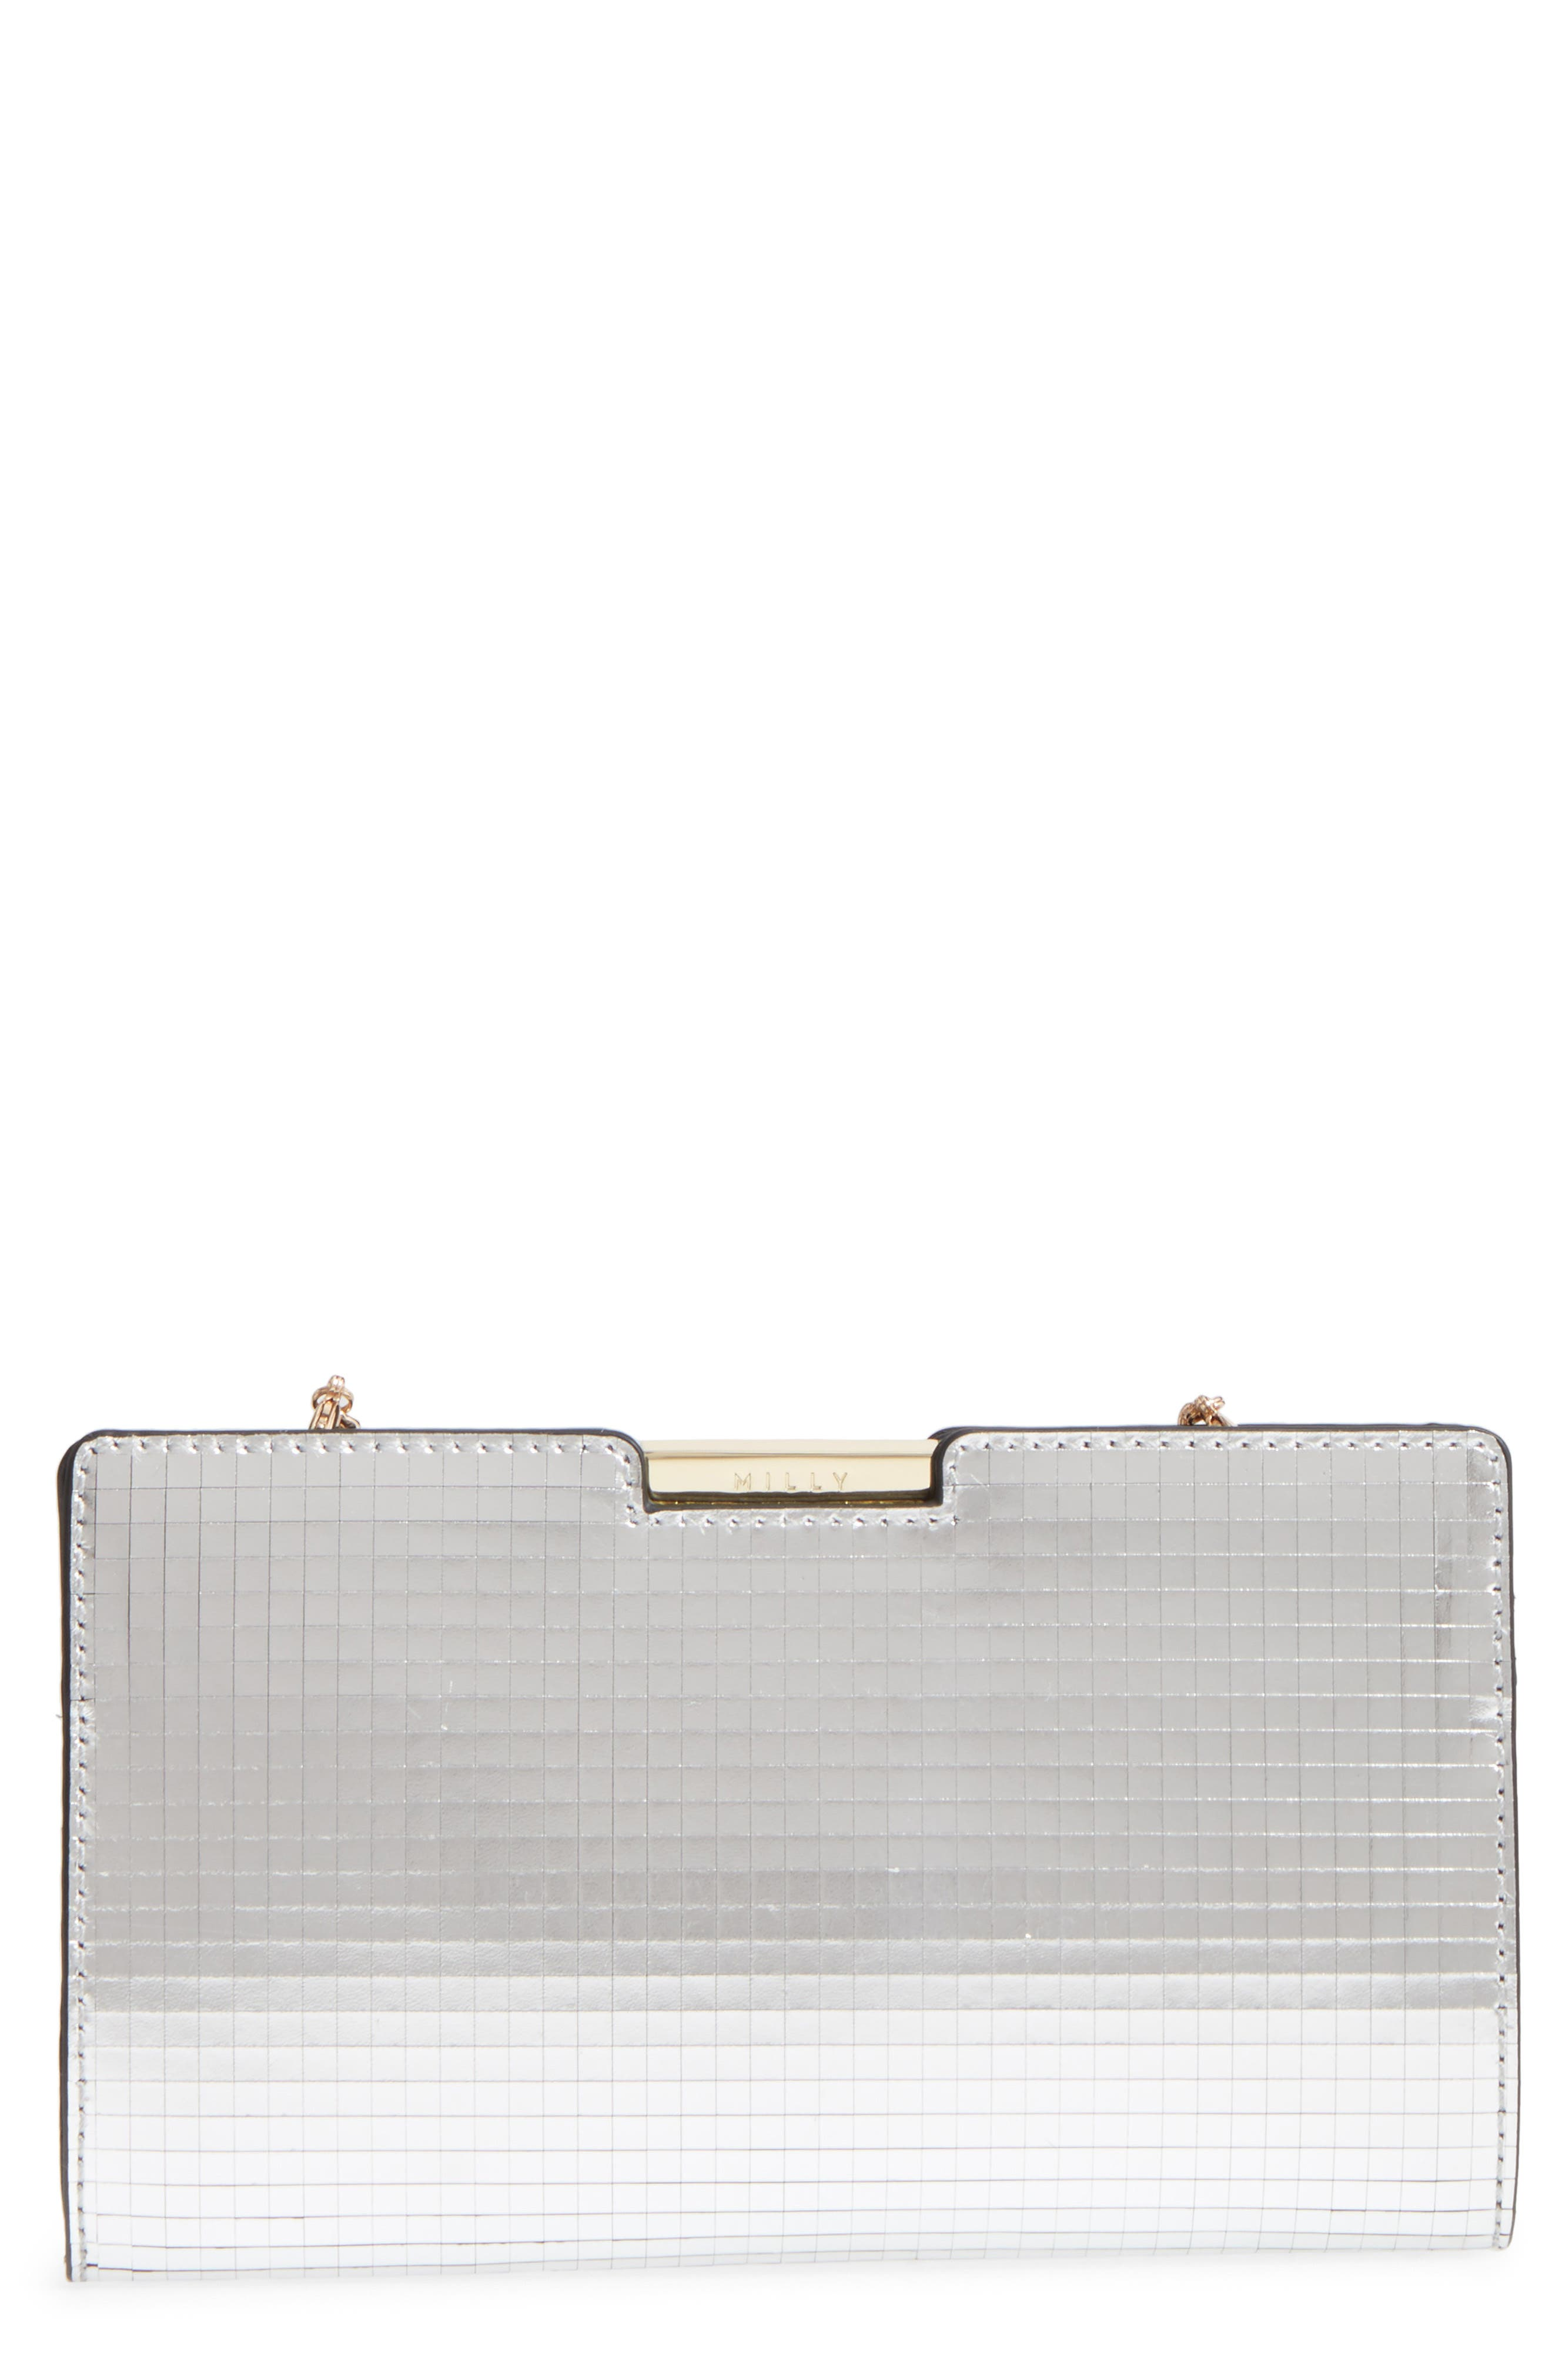 Alternate Image 1 Selected - Milly Small Mirror Mosaic Leather Frame Clutch